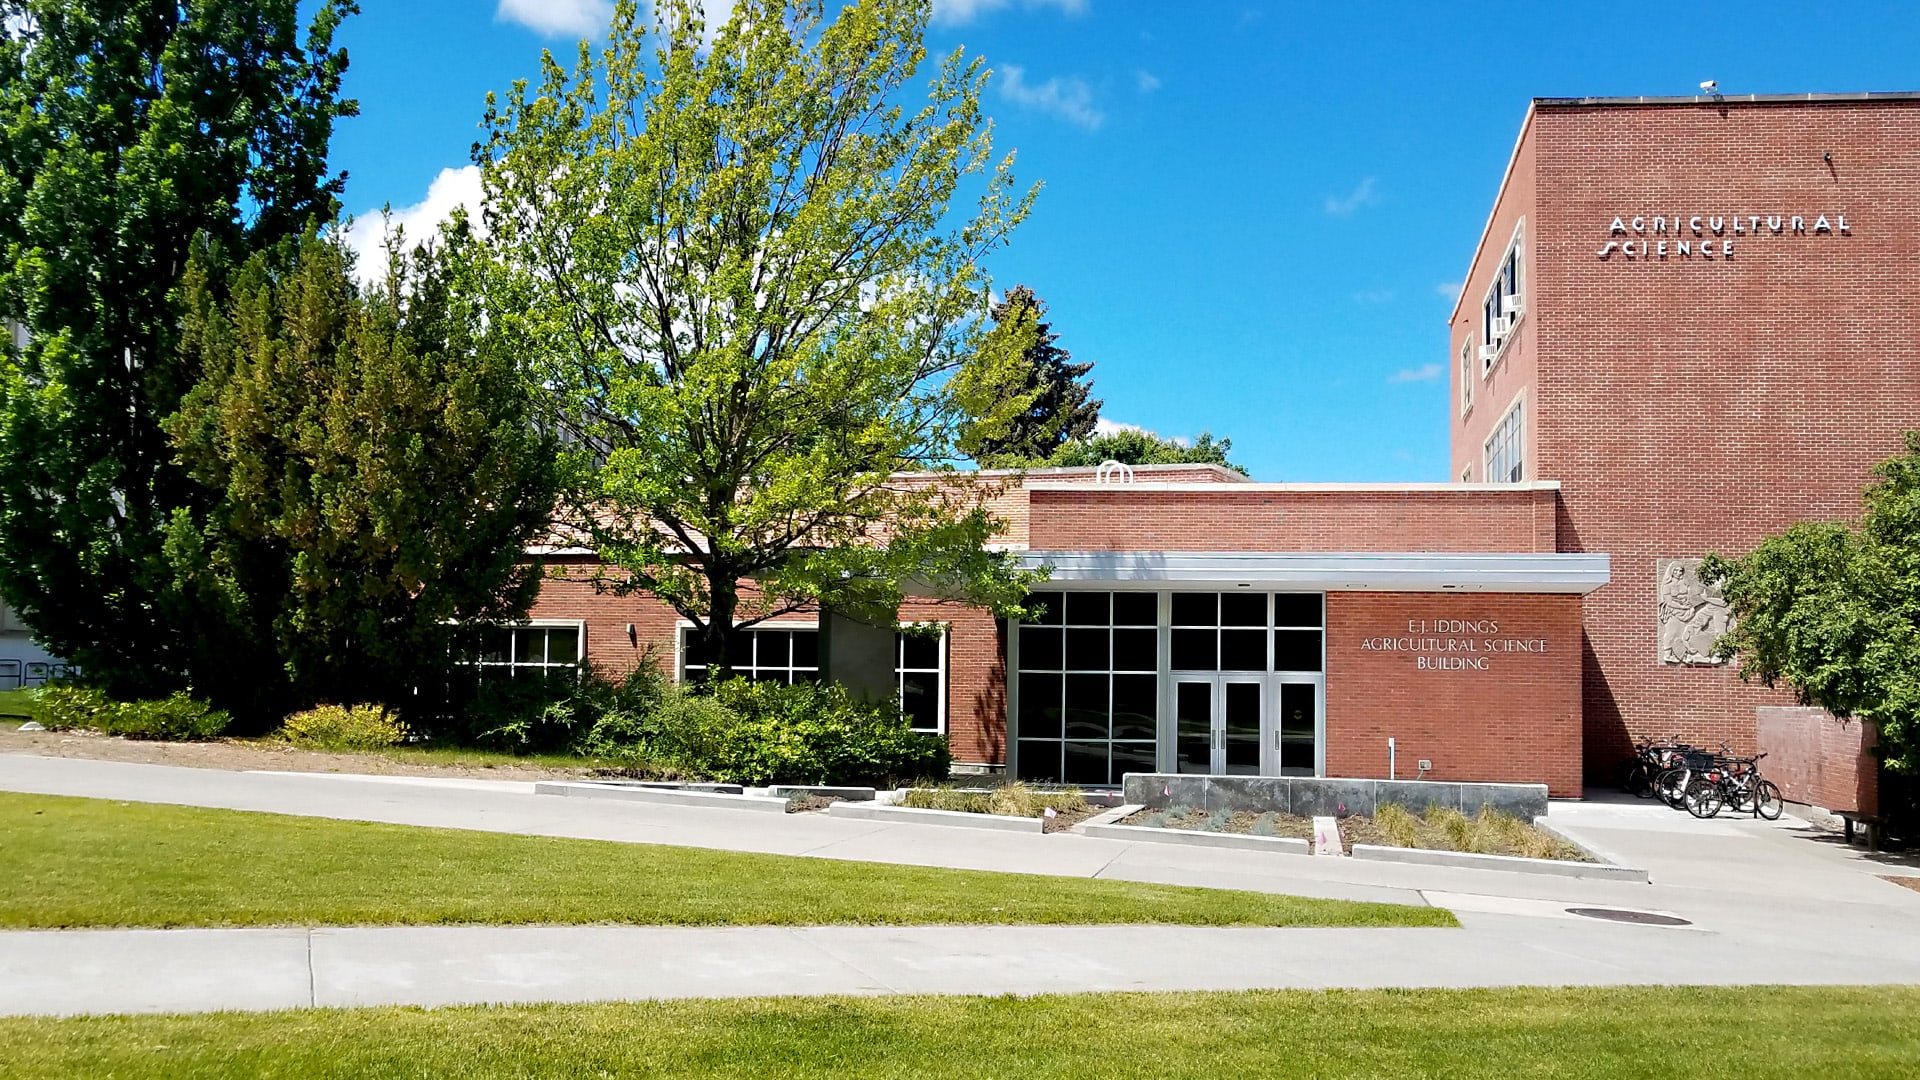 University of Idaho Agricultural Science Building & ADA Universal Accessibility Entrance